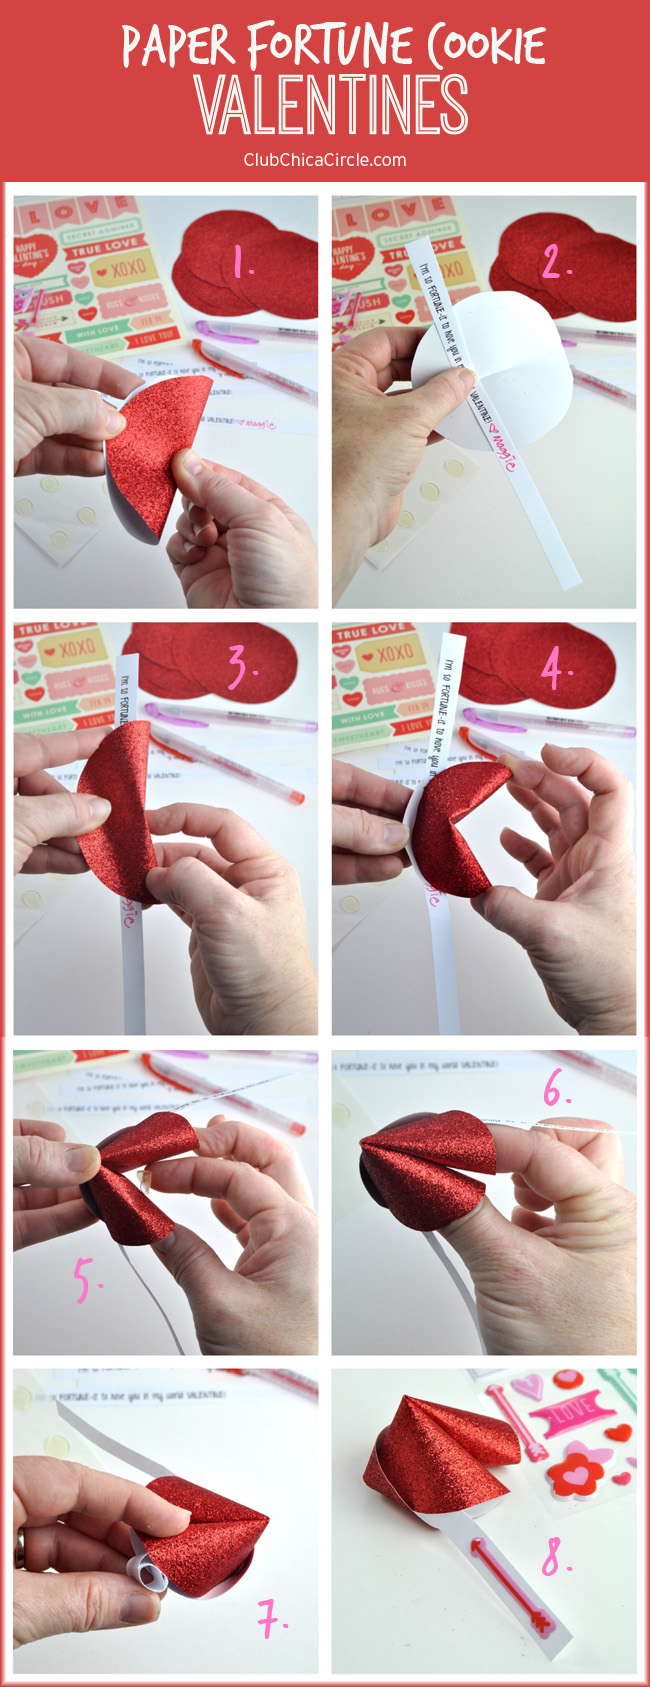 Easy Paper Fortune Cookie Valentines DIY